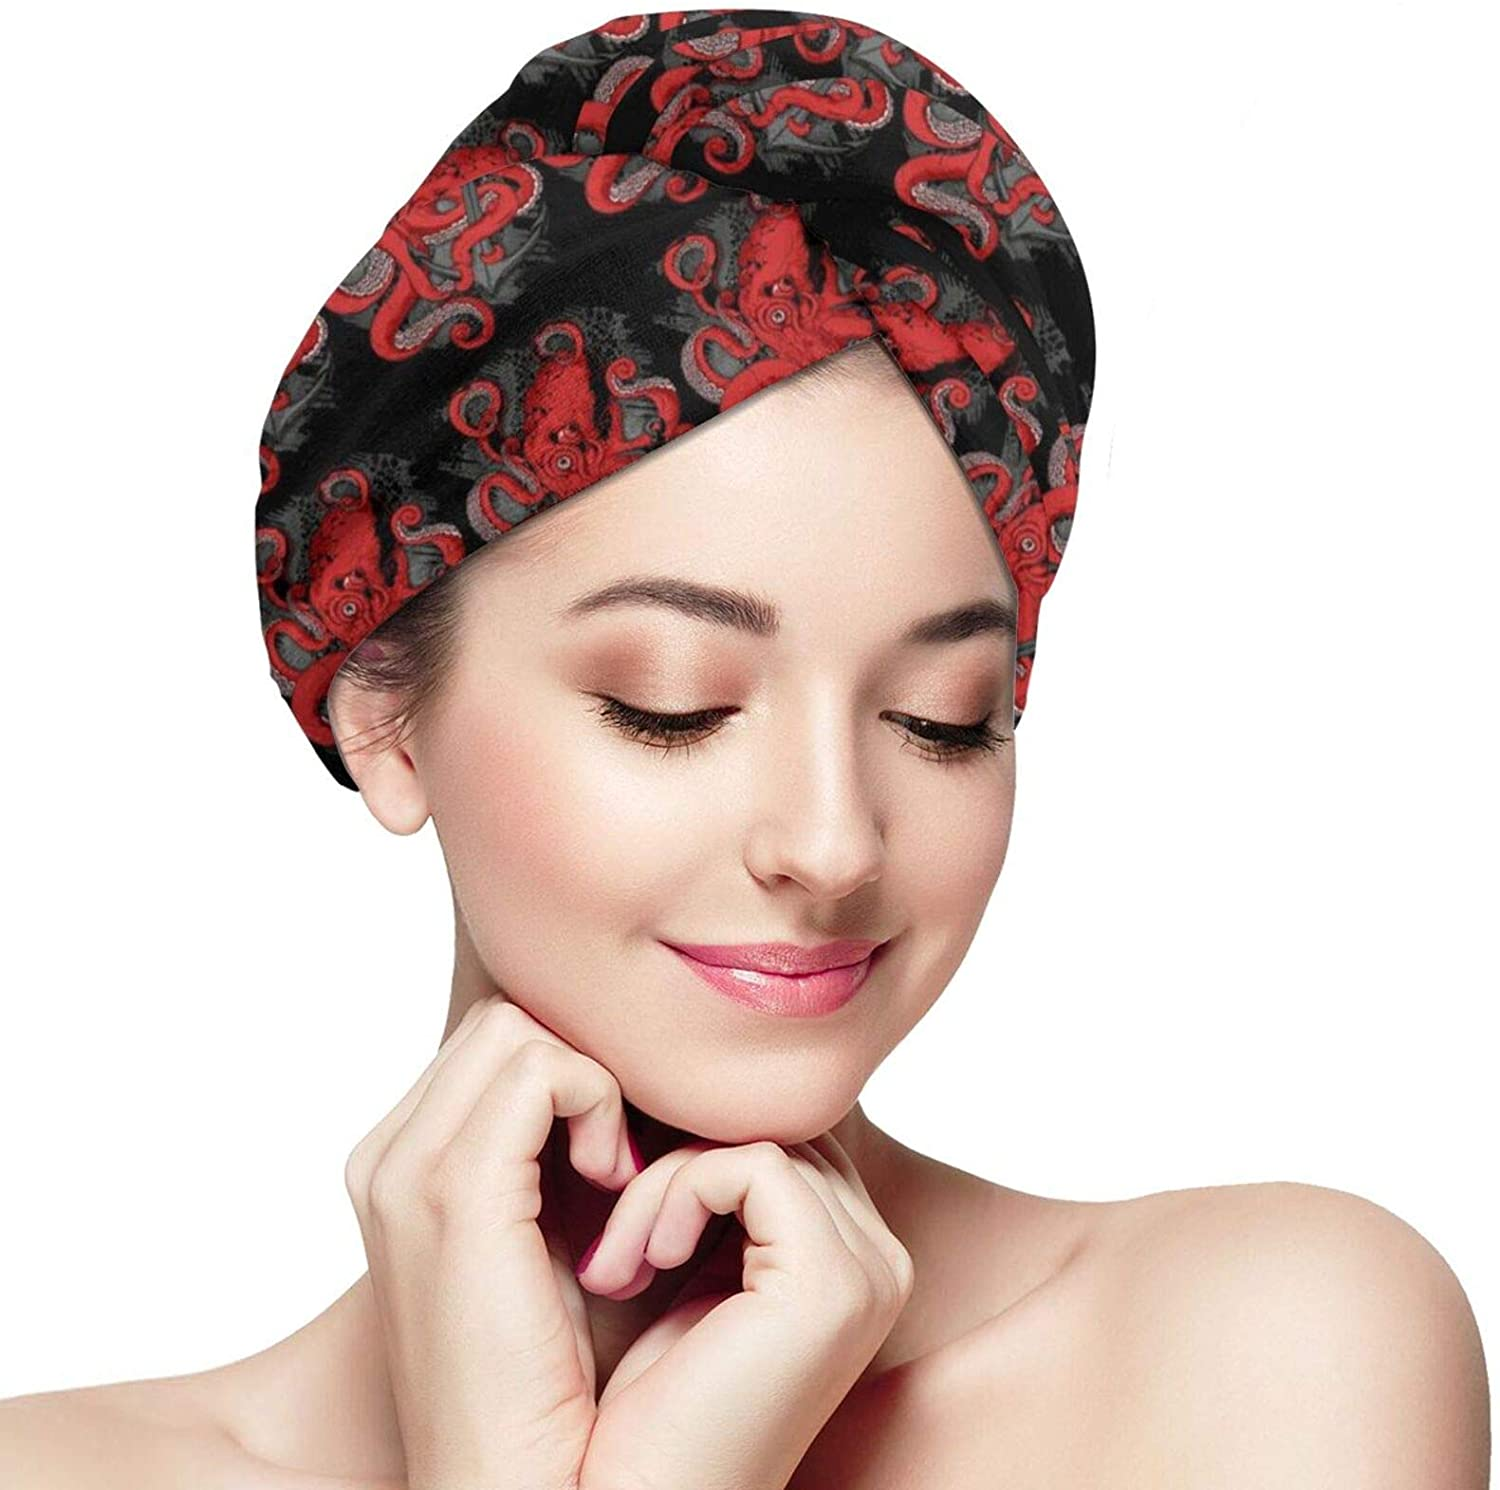 SWEET TANG Women Girls Red Octopus Nautical Anchor Artwork Black Hair Towel Anti Frizz Super Absorbent Soft Salon Dry Hair Hat Quick Dry Bath Shower Turban Twist for Curly Long Thick Hair